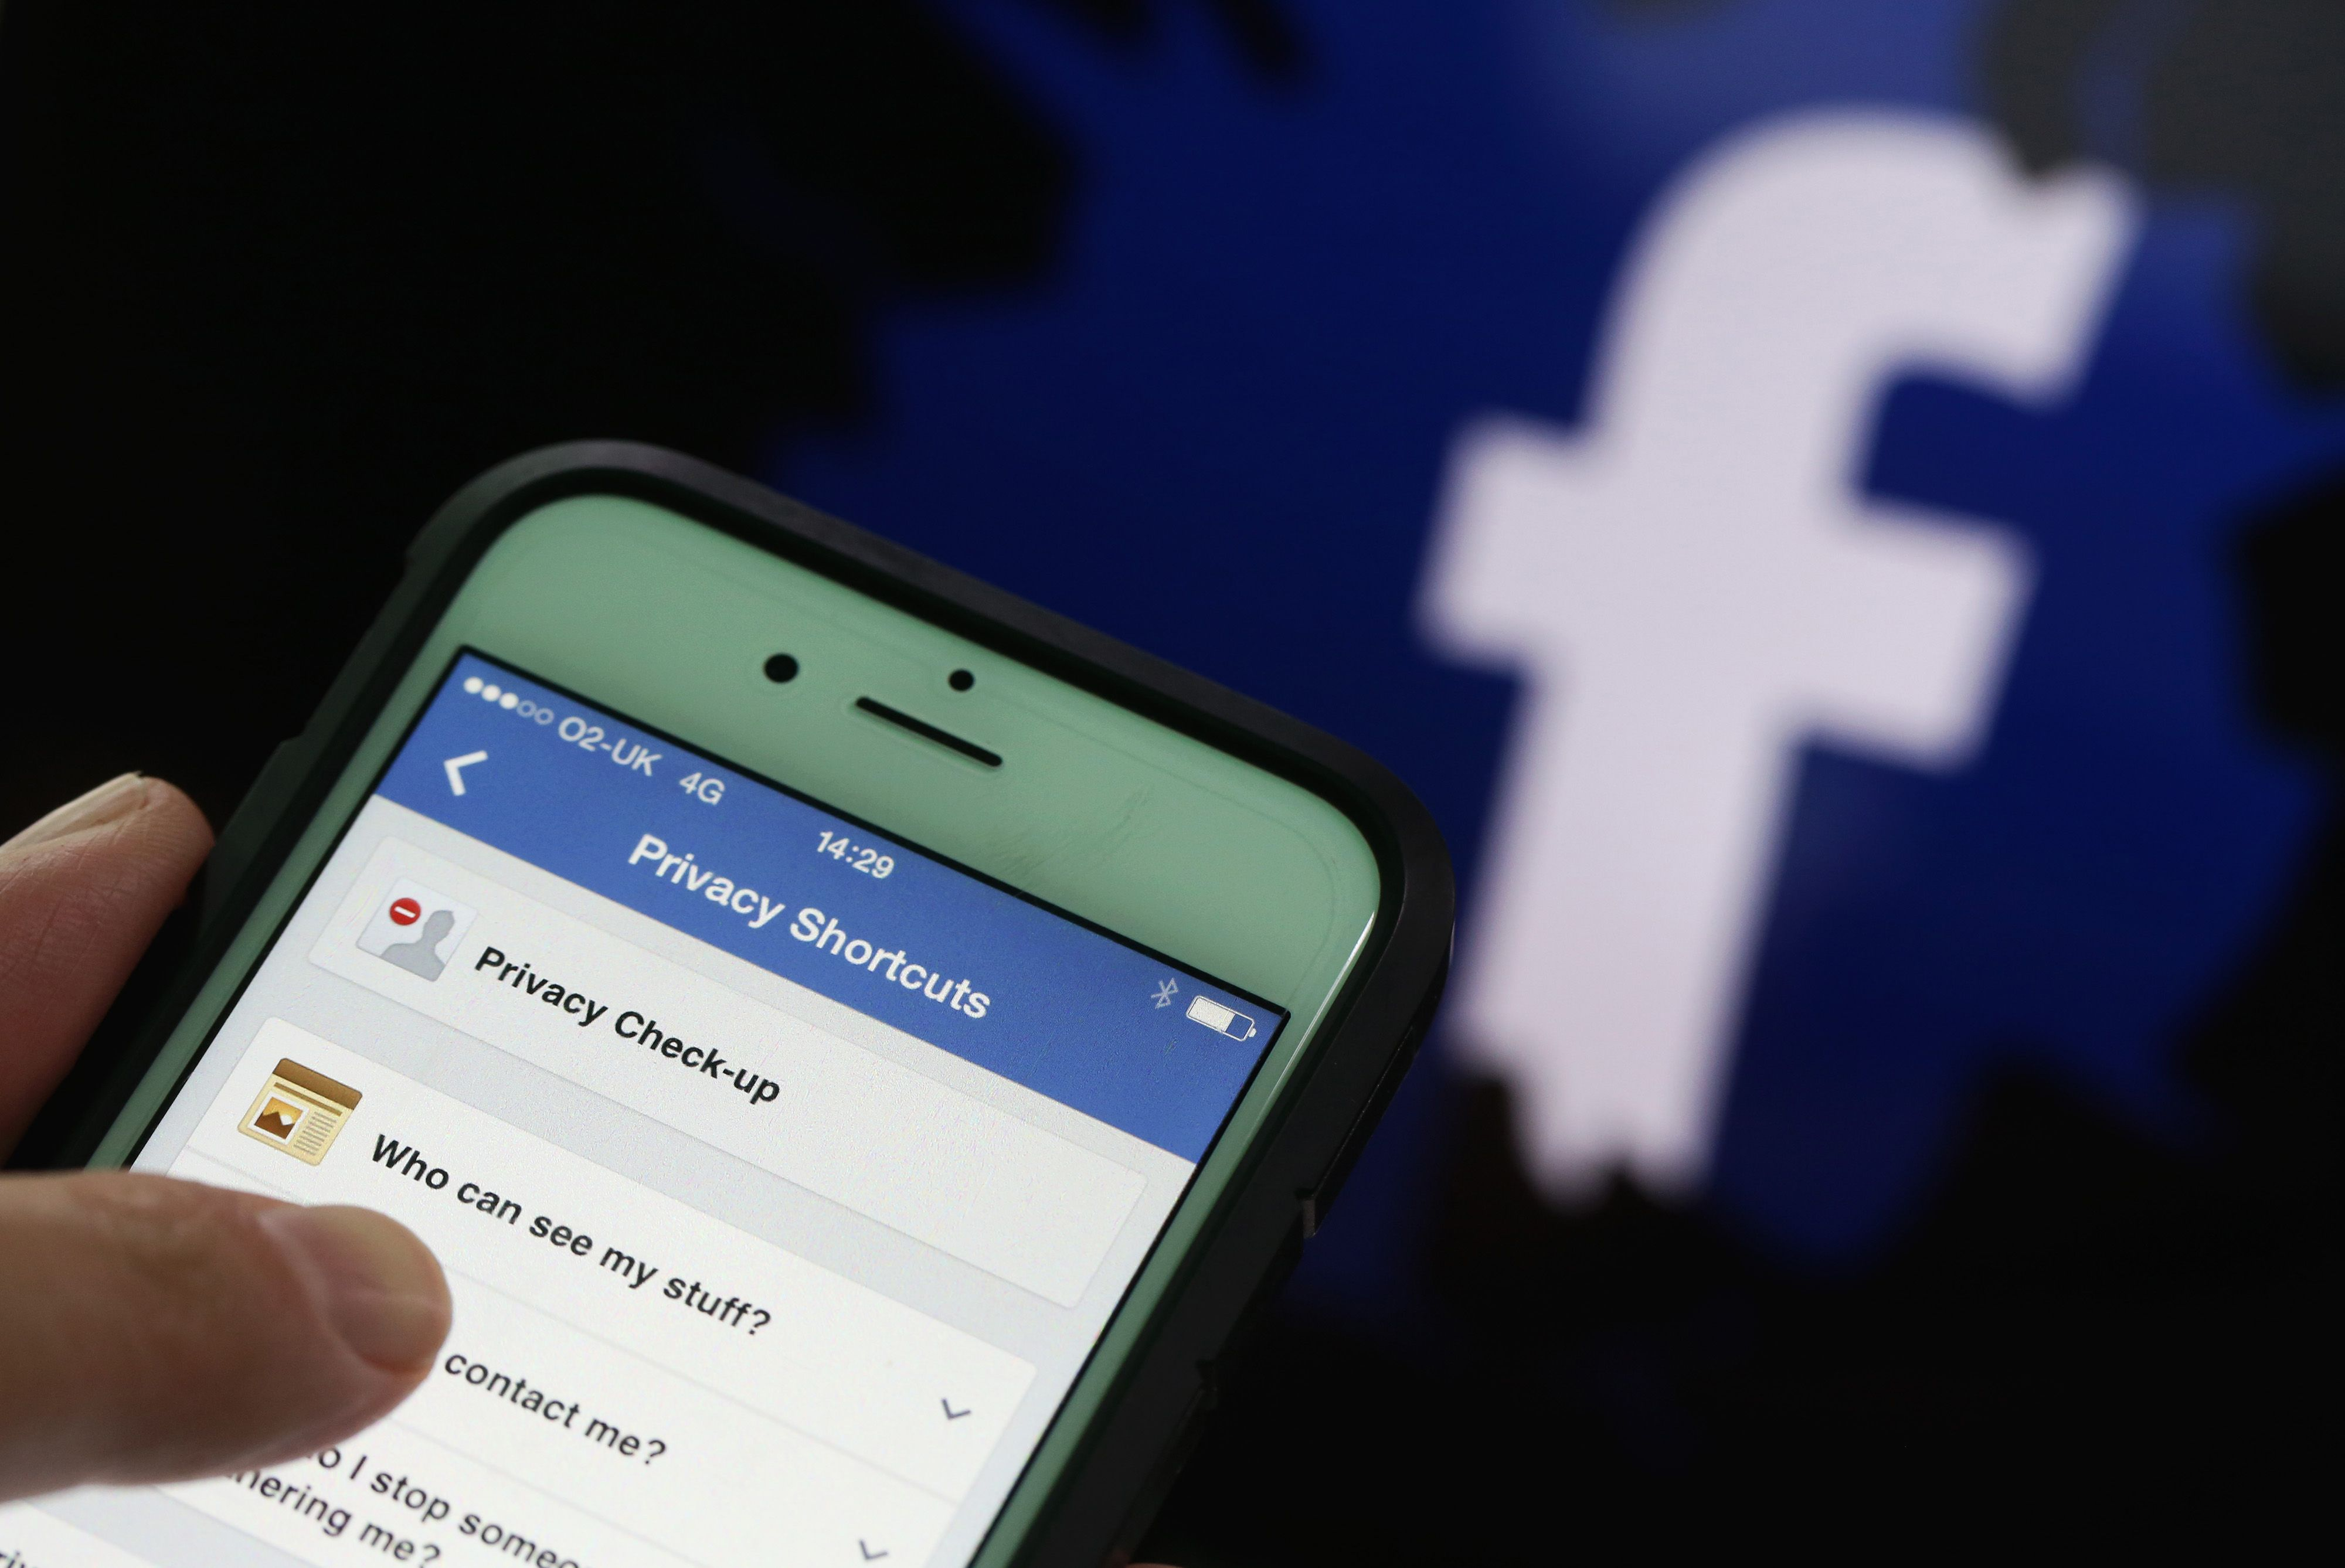 Privacy setting shortcuts are displayed on Apple Inc. iPhone smartphone screen as a FaceBook Inc. logo is seen in this arranged photograph taken in London, U.K., on Friday, May, 15, 2015. Facebook reached a deal with New York Times Co. and eight other media outlets to post stories directly to the social networku00d5s mobile news feeds, as publishers strive for new ways to expand their reach. Photographer: Chris Ratcliffe/Bloomberg